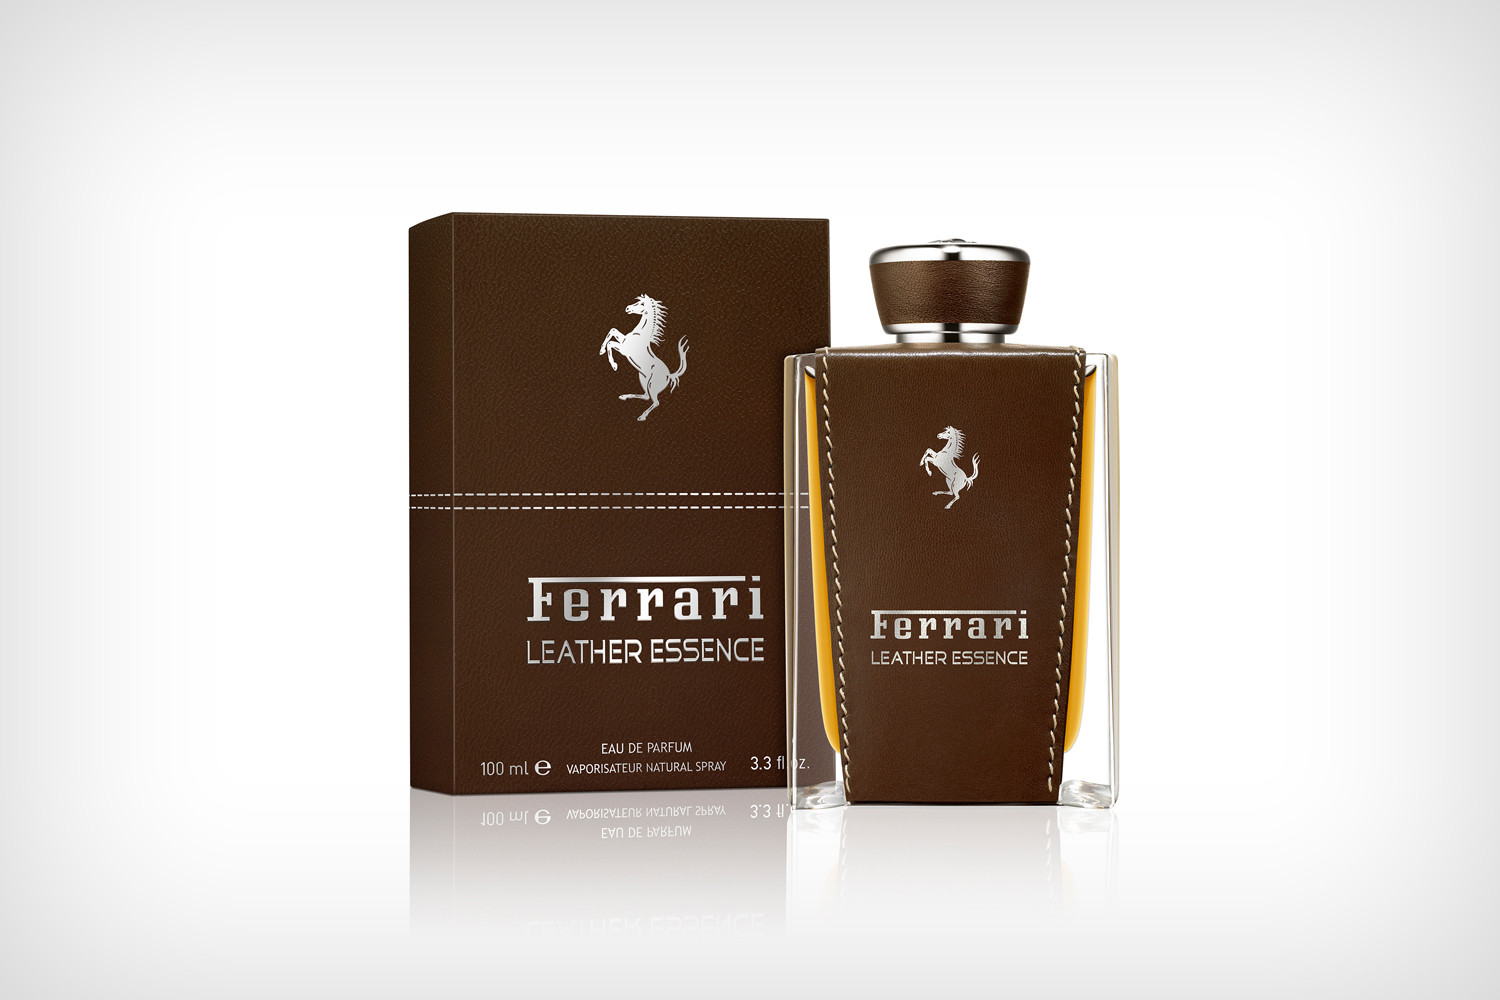 Ferrari Leather Essence (3)